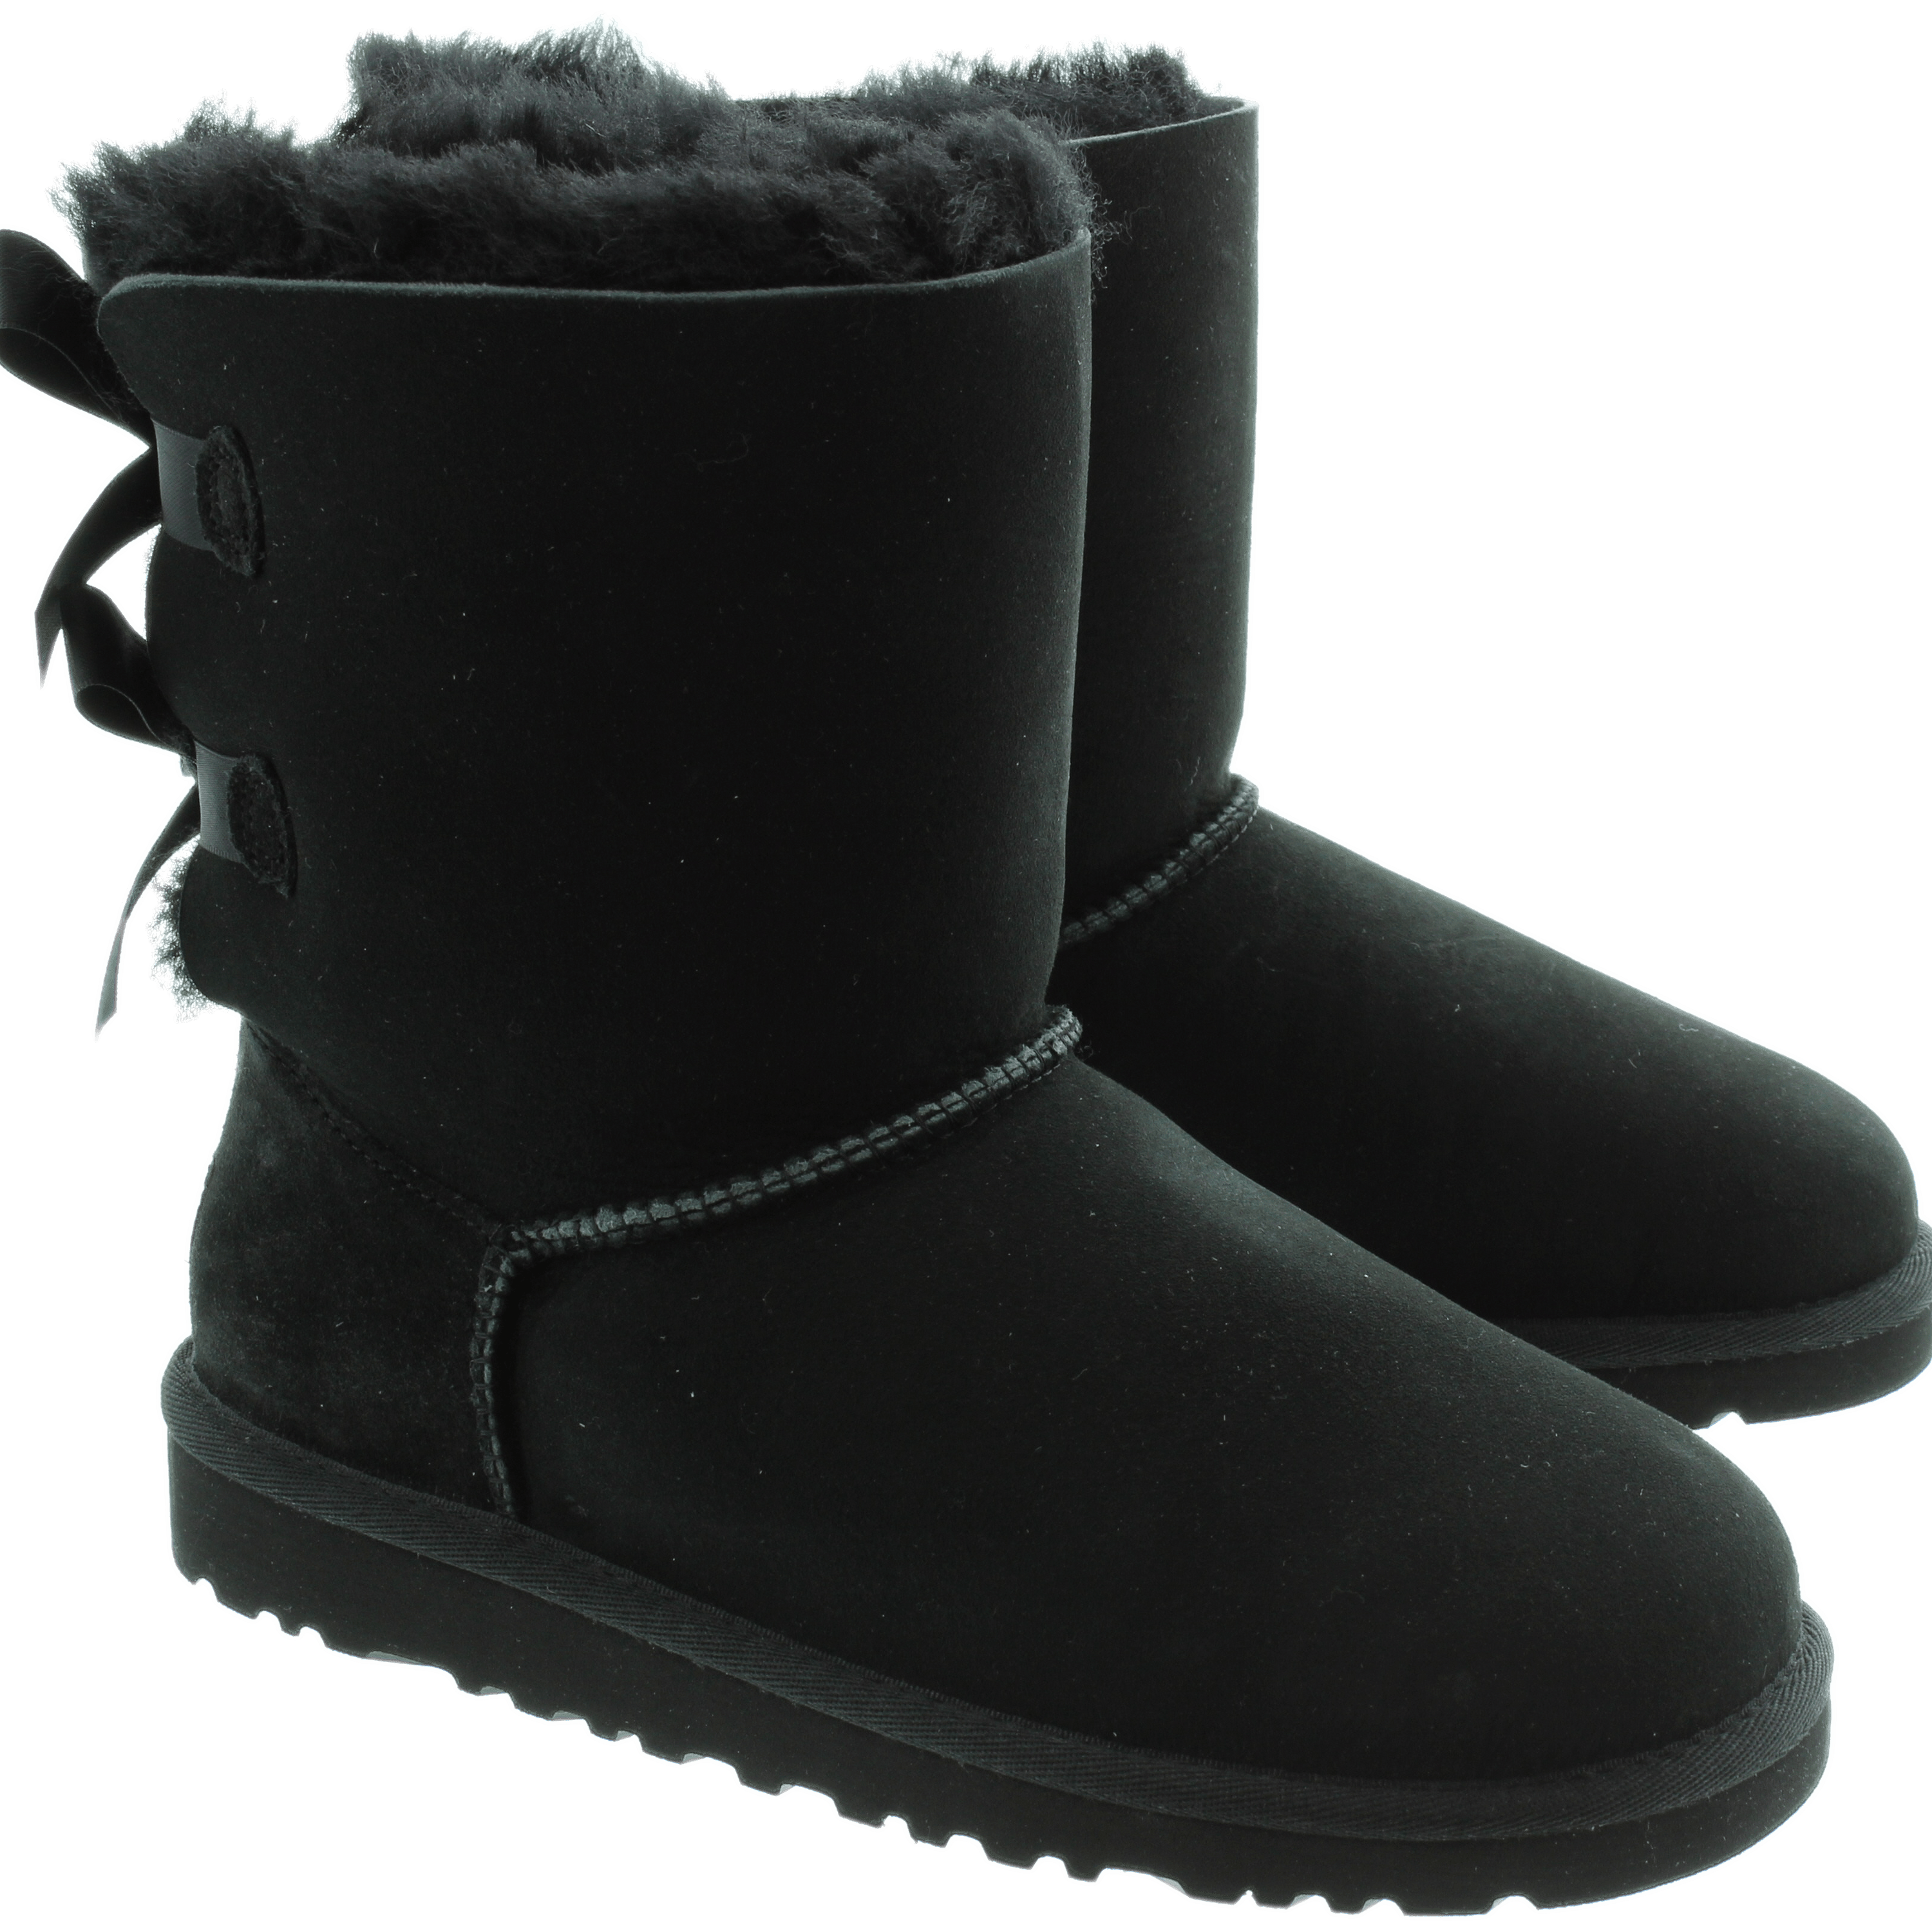 Black Winter Boot PNG Image